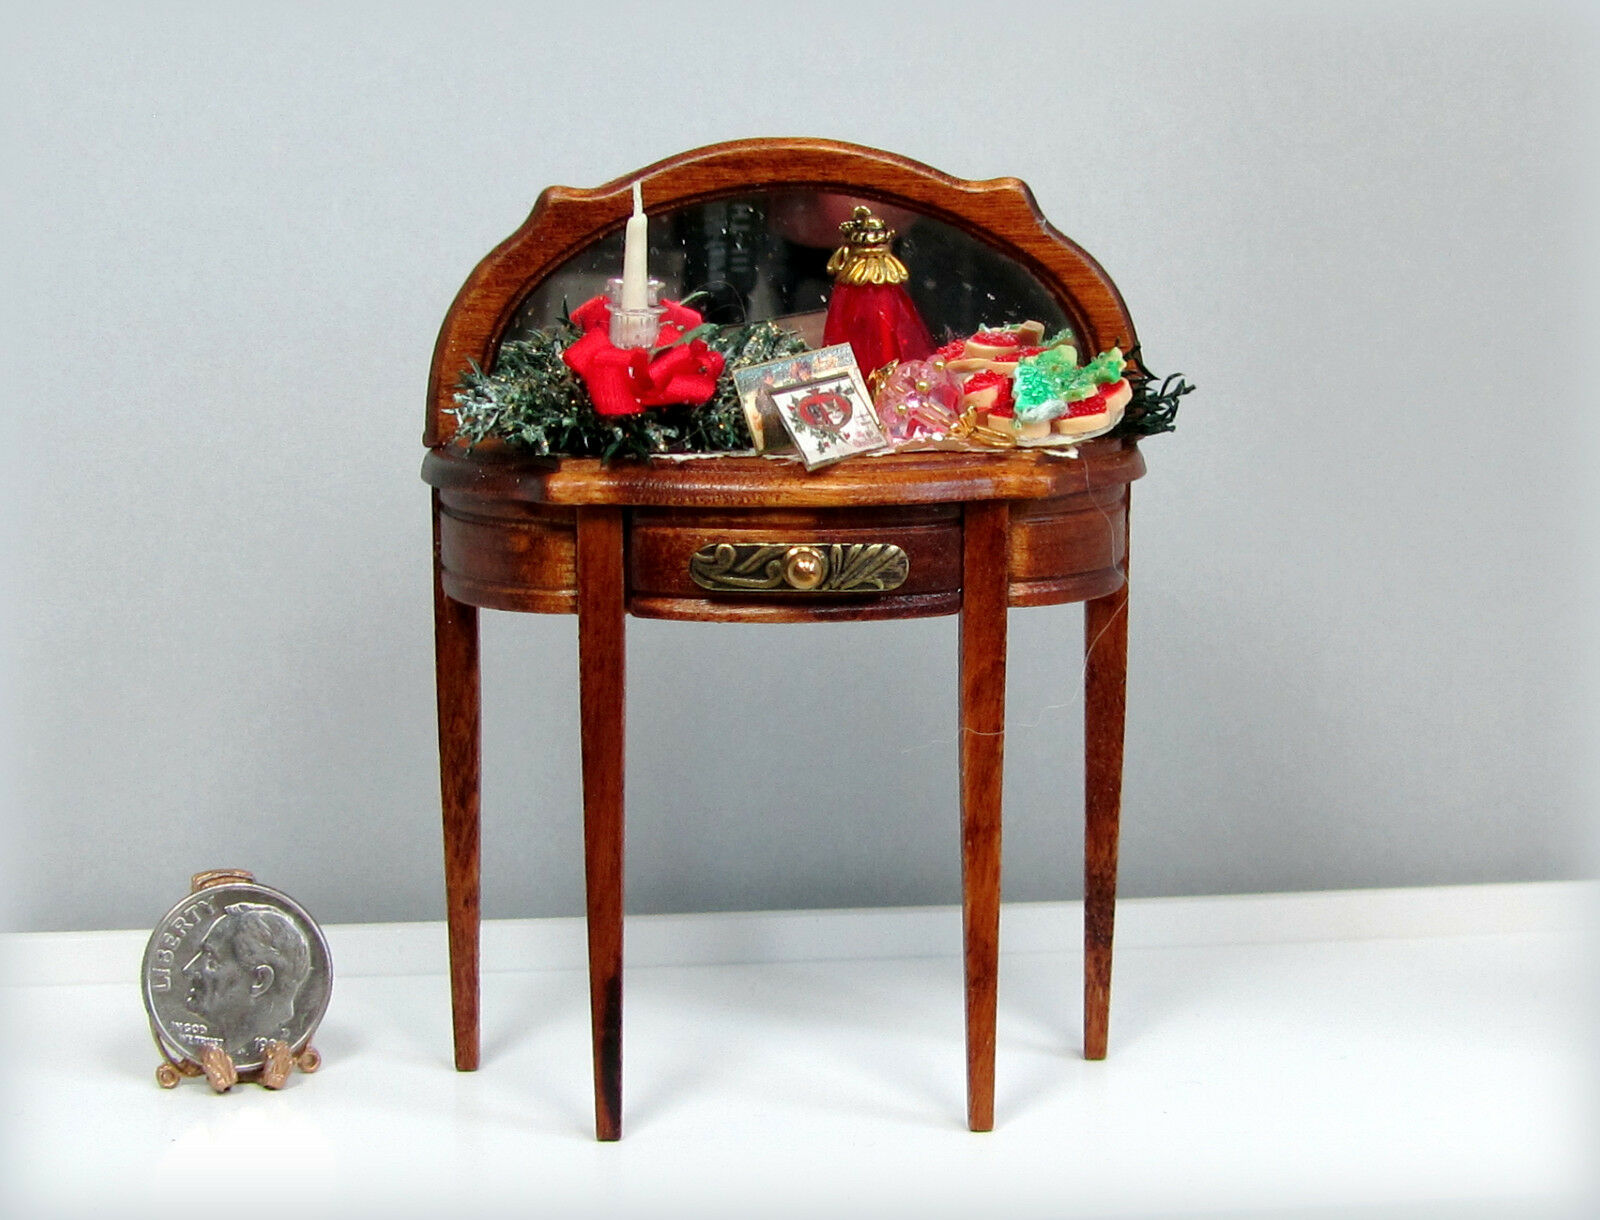 Multiplex 12mm Gamma Miniature Christmas Holiday Mirrored Table By Loretta Kasza